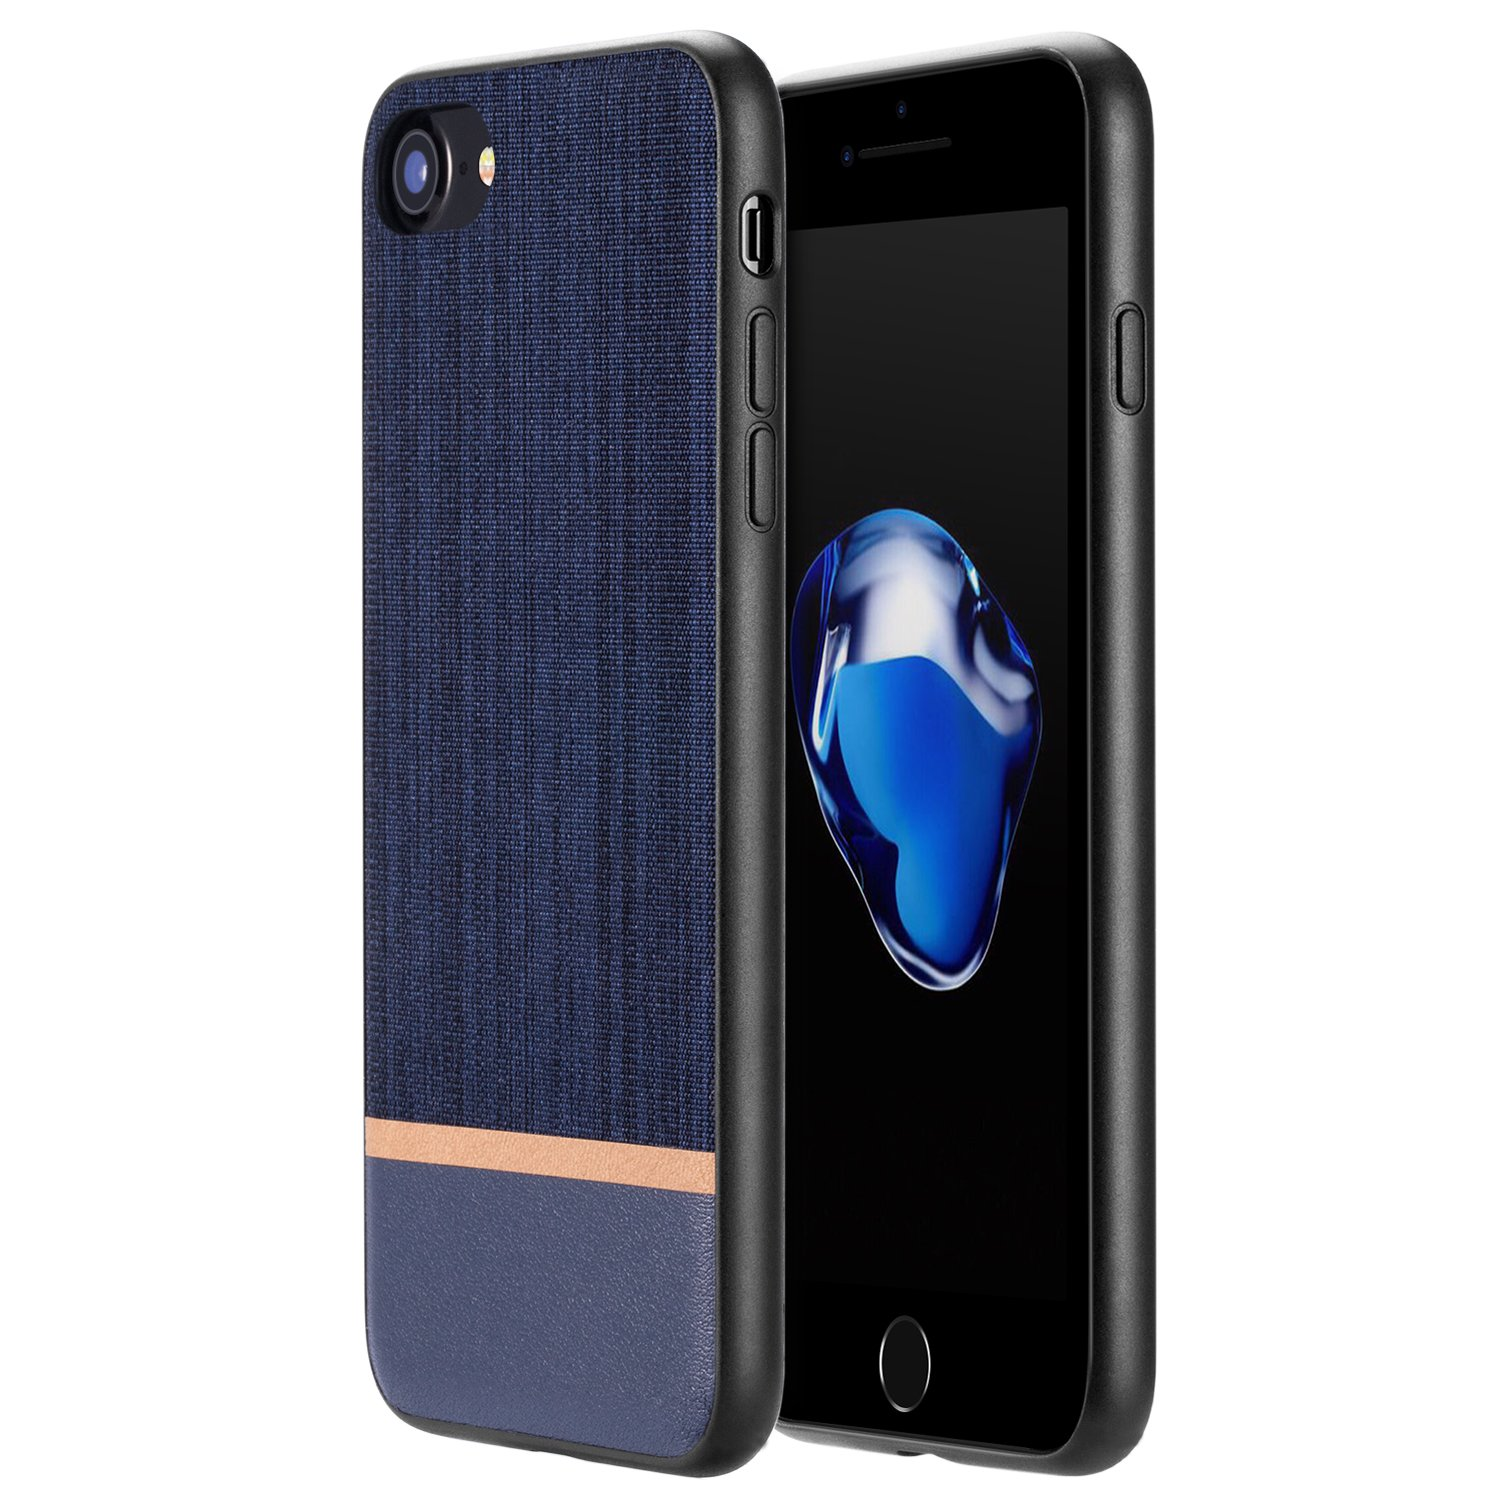 RANVOO iPhone SE Case New 2020, iPhone 8 Case, iPhone 7 Case, [Canvas Series] Ultra Slim Thin Protective Hard Leather Cover Case for iPhone SE (2020)/ 8 / iPhone 7, Navy Blue